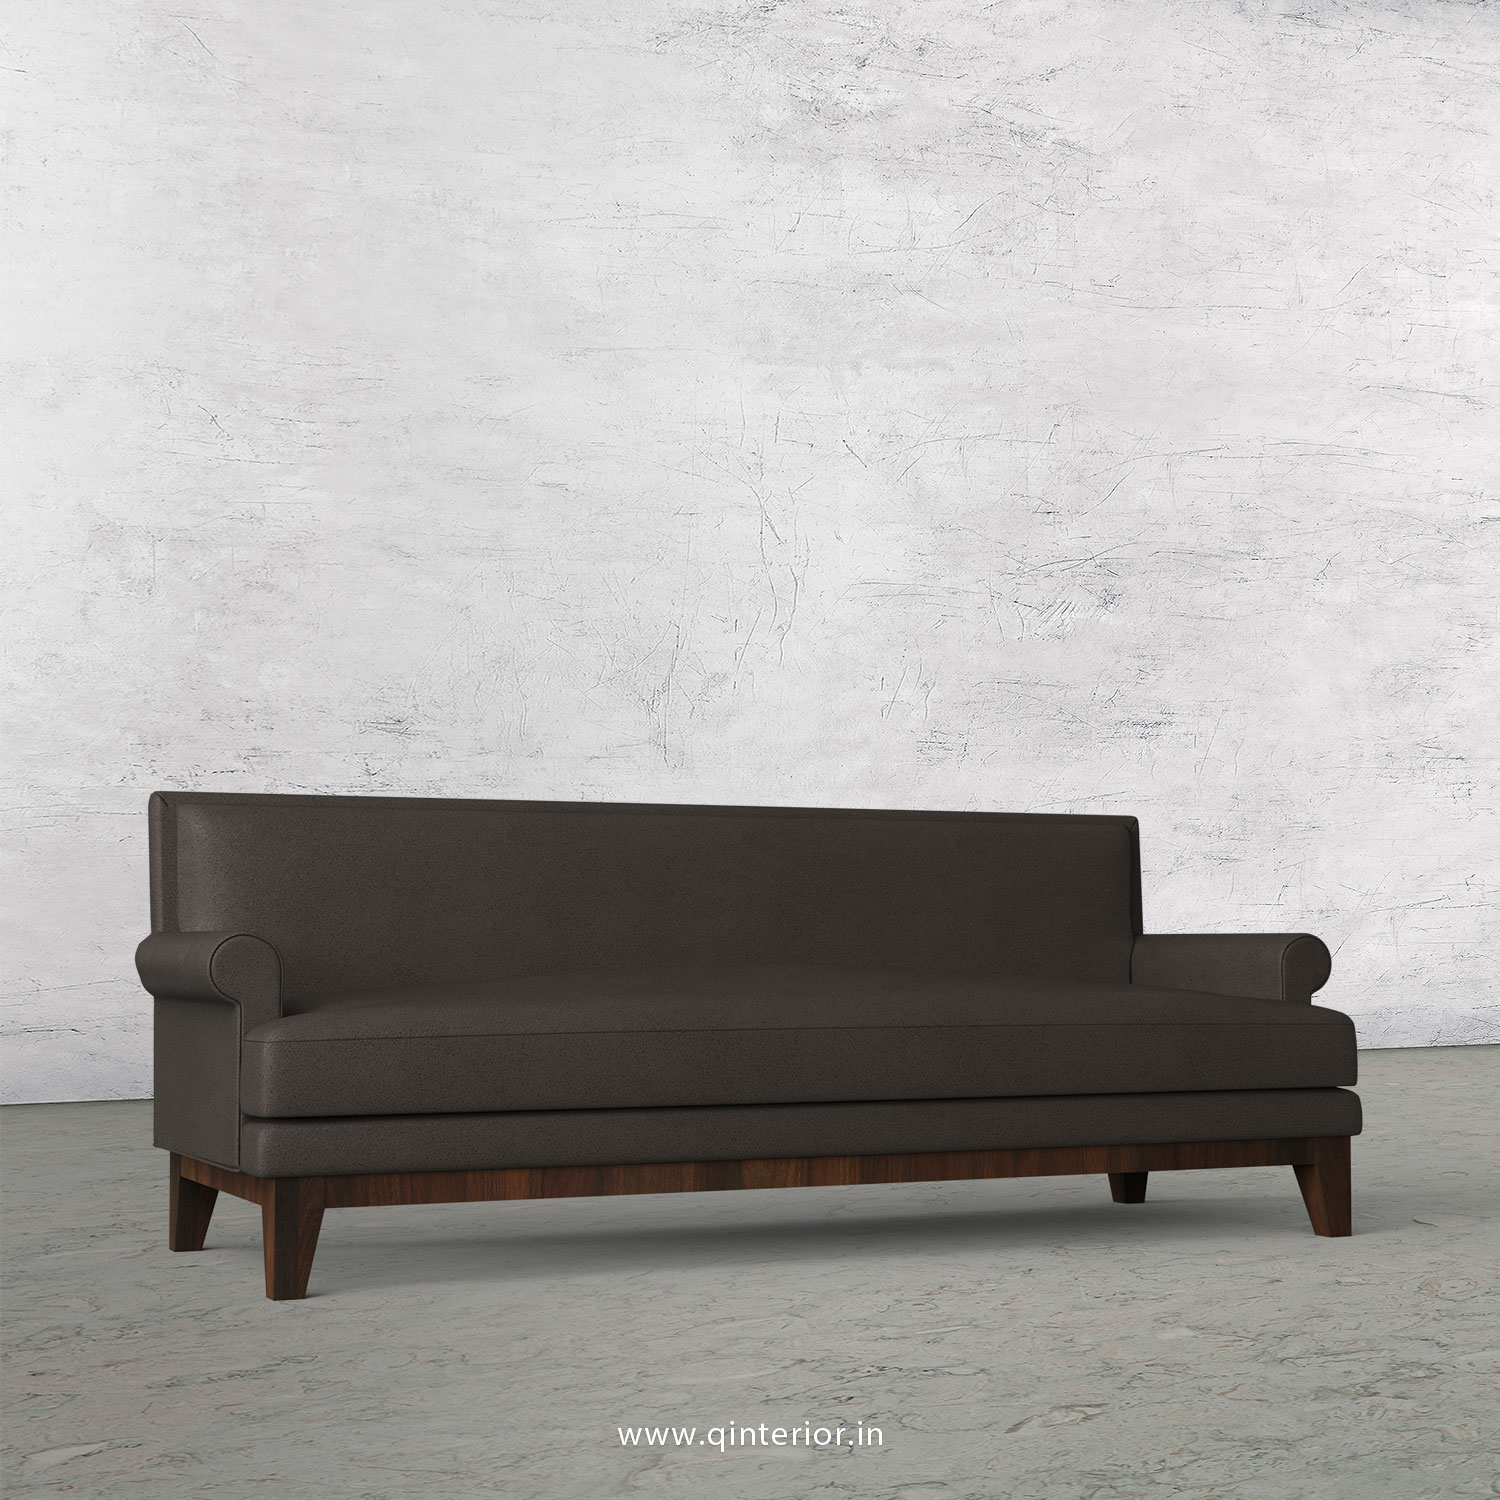 Aviana 3 Seater Sofa in Fab Leather Fabric - SFA001 FL15